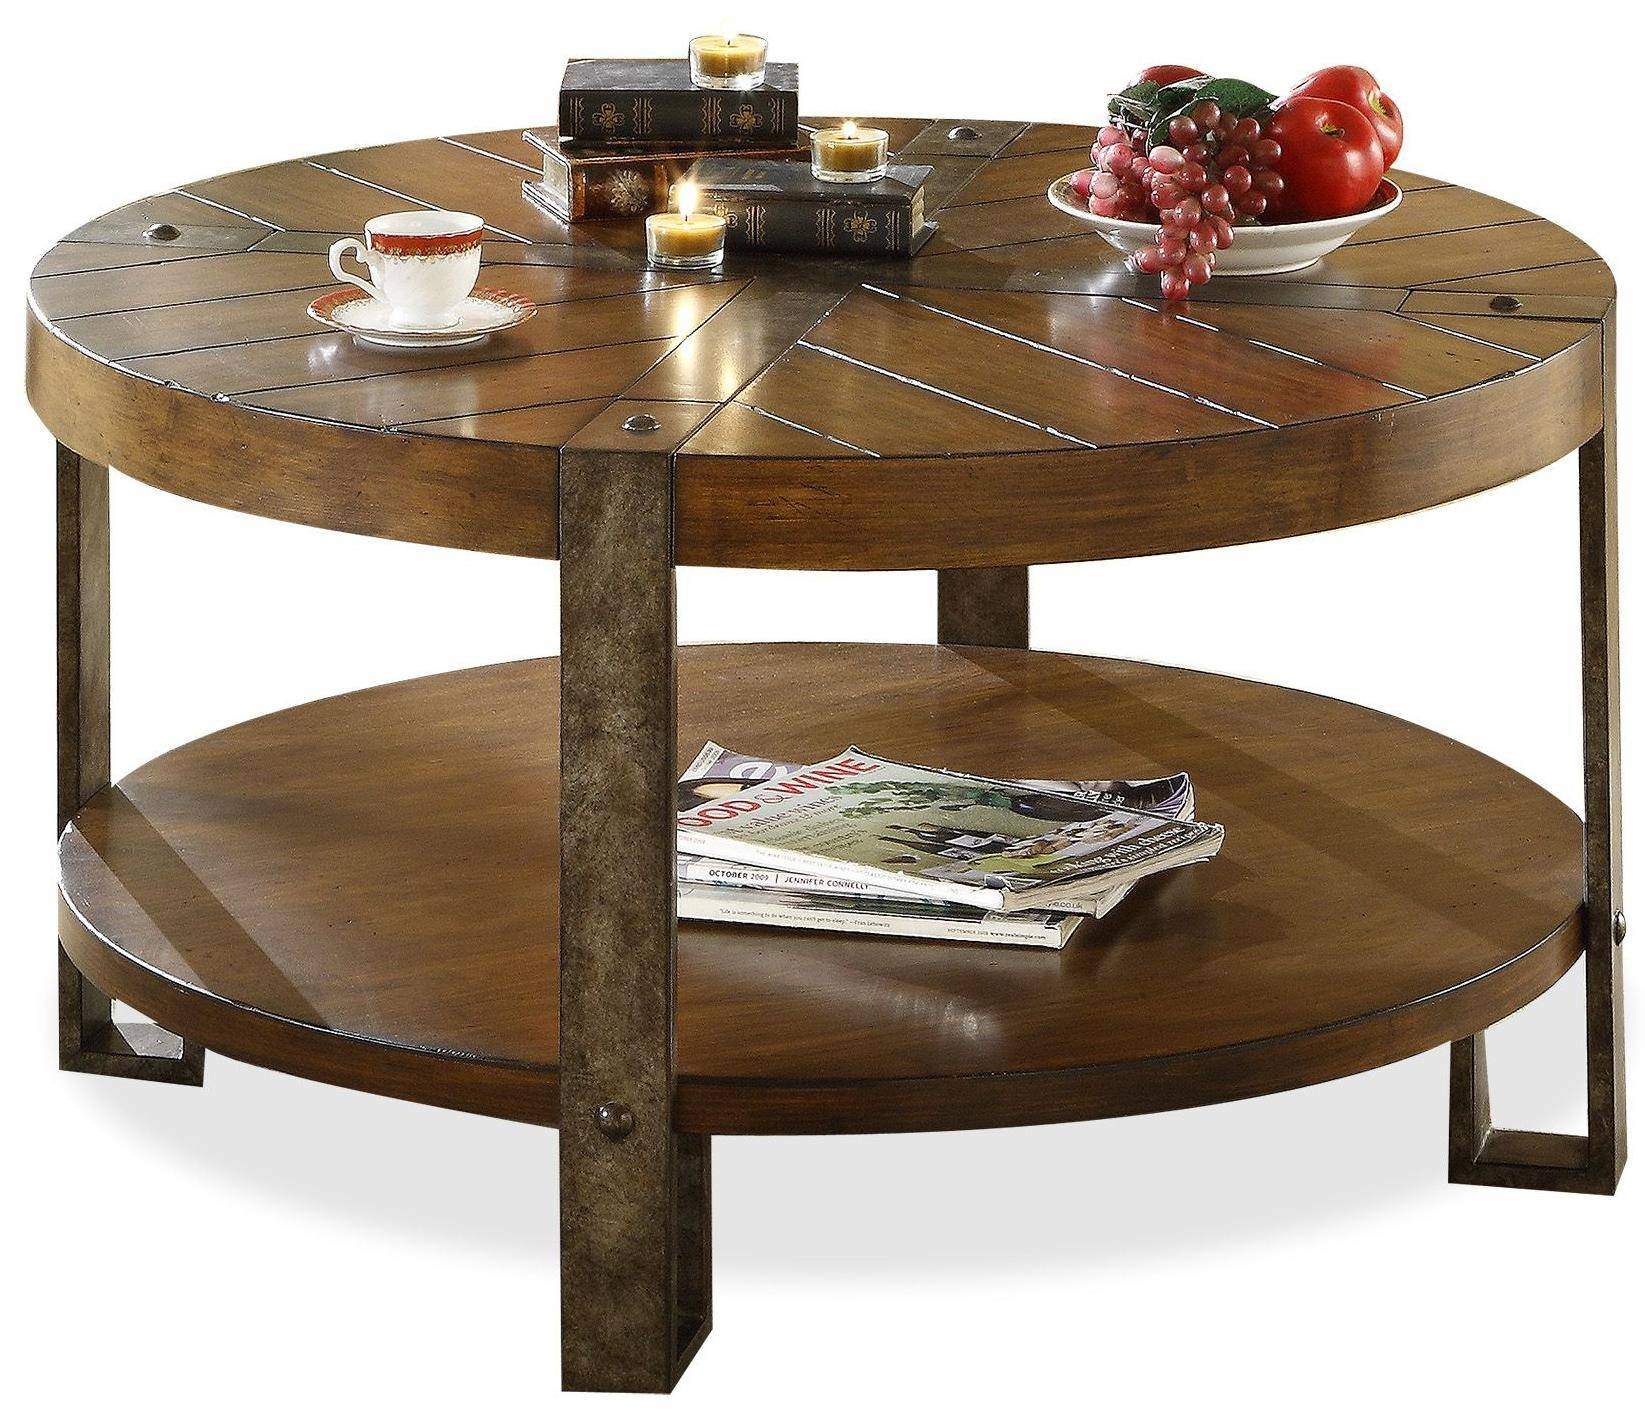 Riverside Furniture Sierra Round Wooden Coffee Table With Metal intended for Circular Coffee Tables (Image 27 of 30)